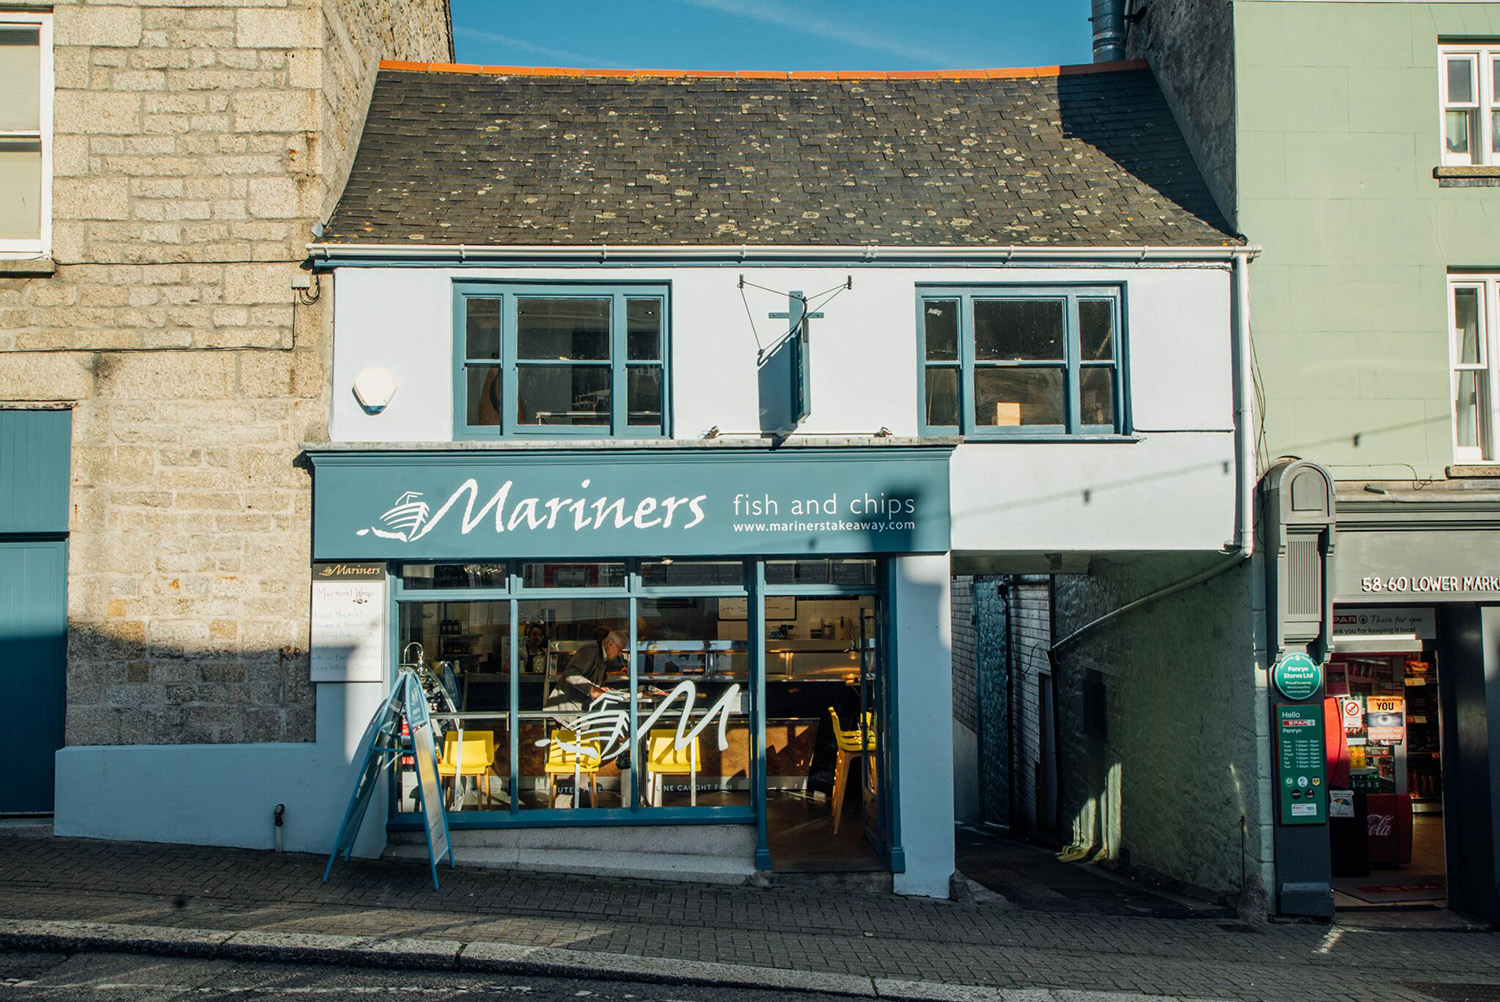 Mariners_Fish_and_Chips_Penryn_exterior_wide.jpg